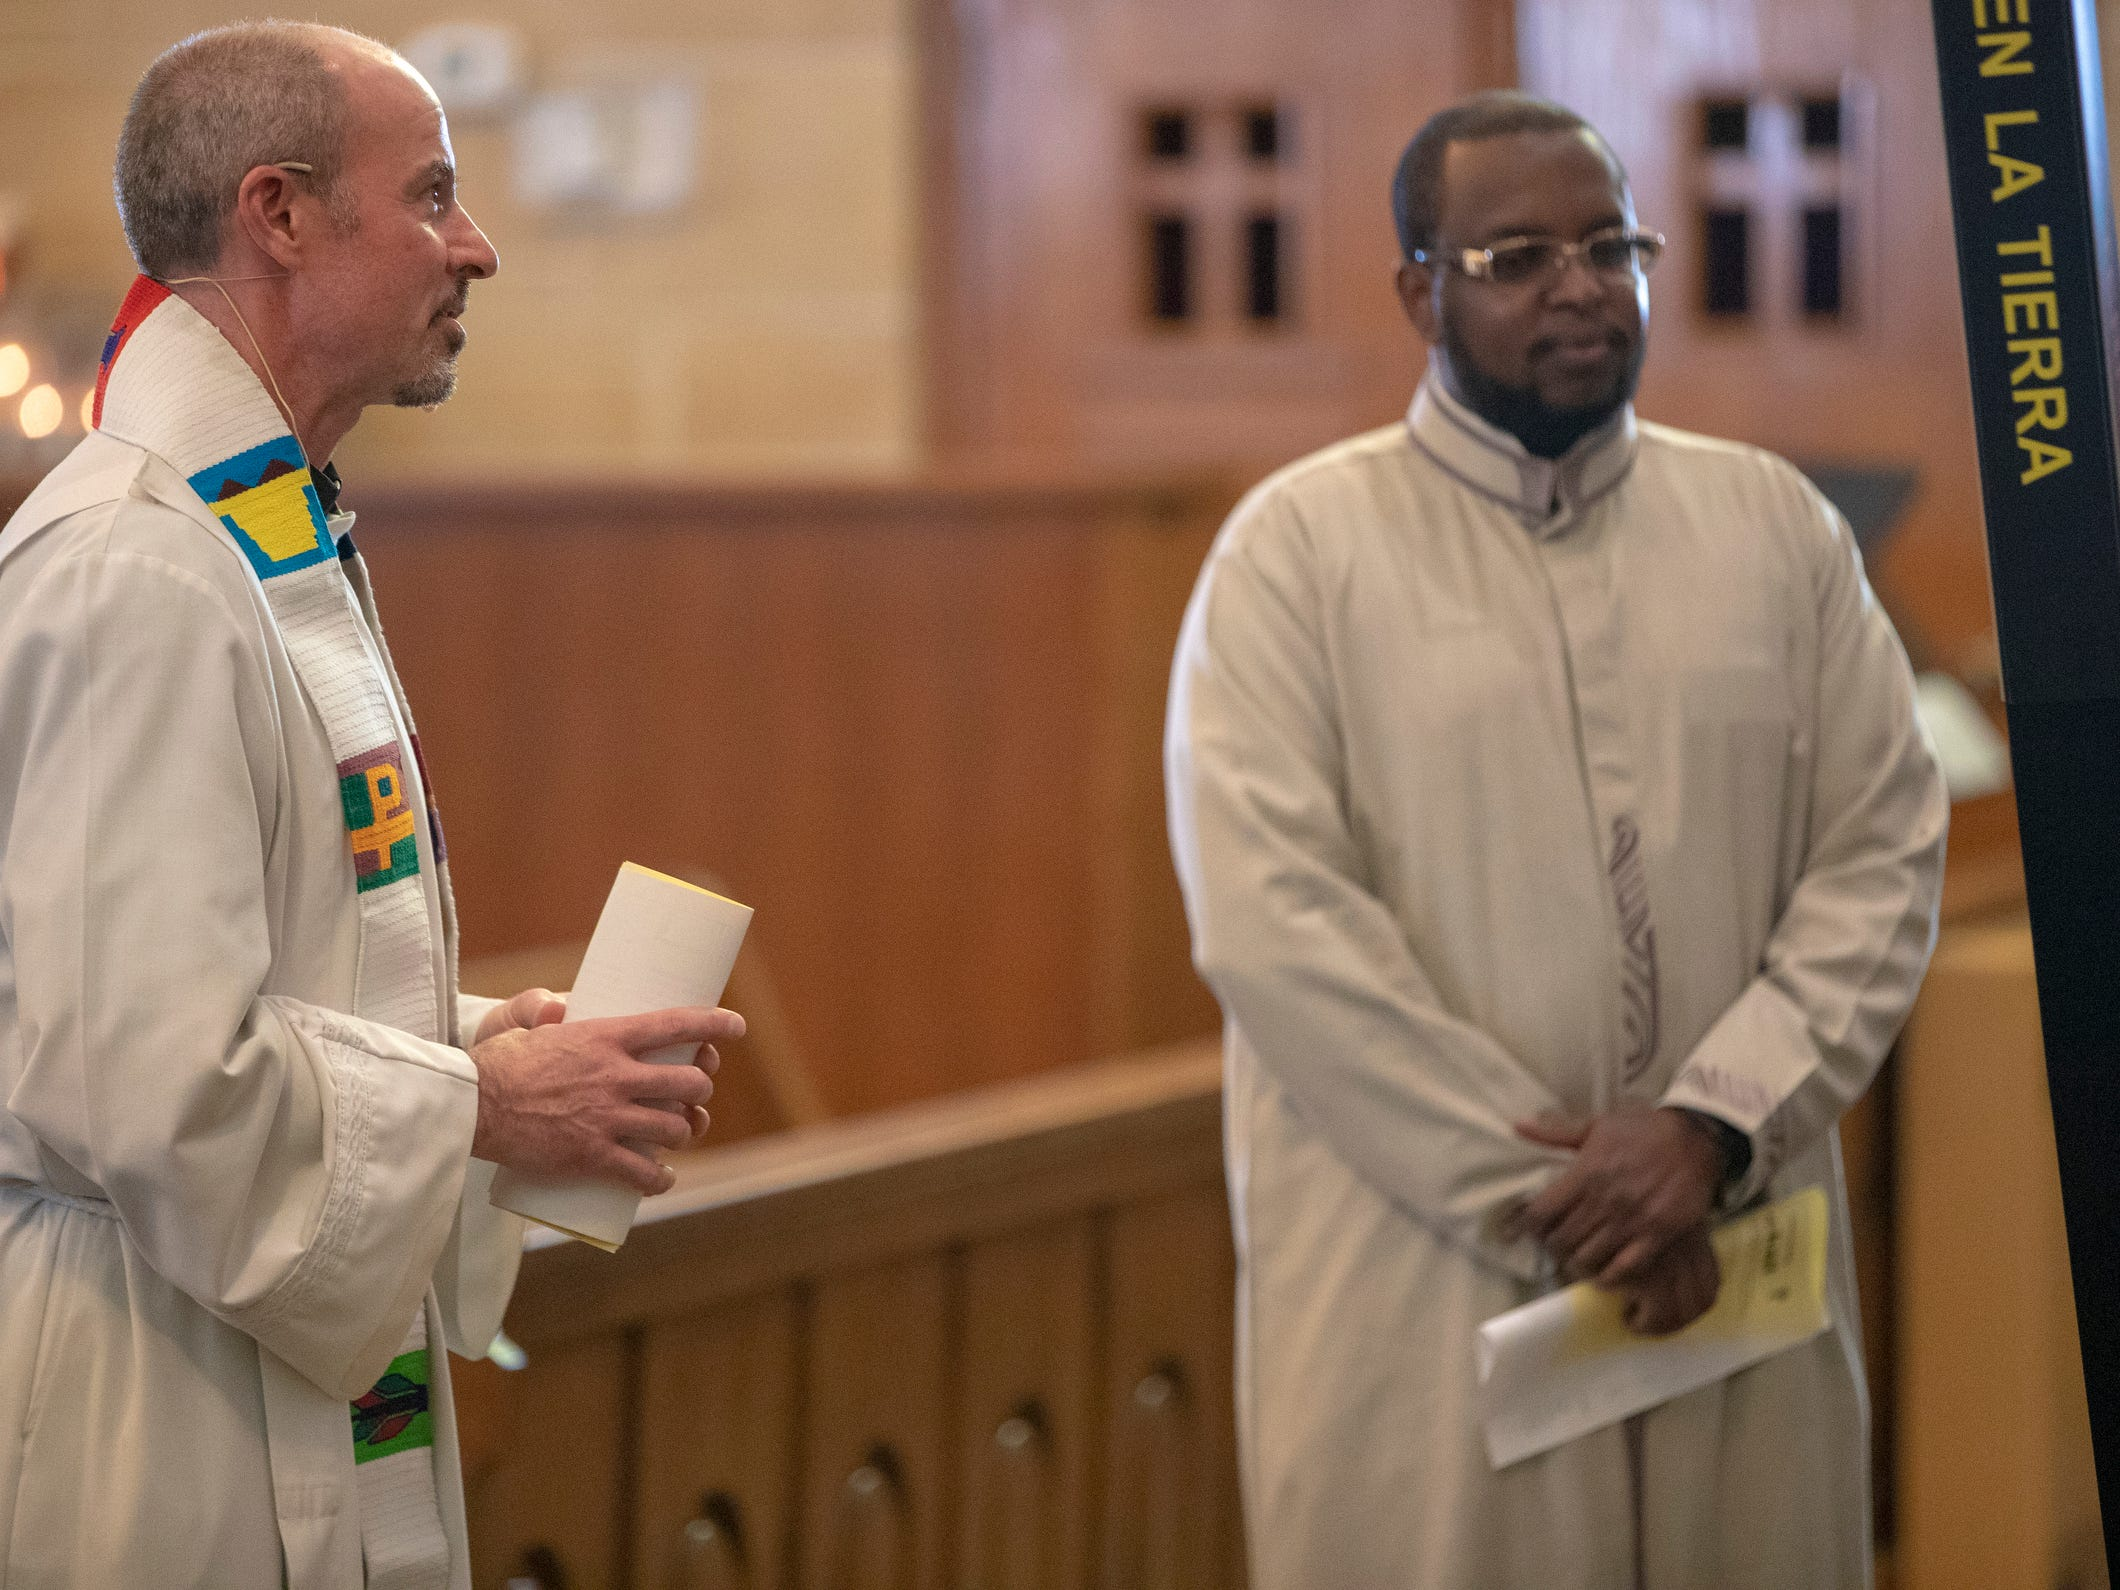 Fr. Chris Wadelton (left), and Imam Ahmed Al-Amine help lead a Christian-Muslim prayer service at Saint Philip Neri Catholic Church, Indianapolis, Sunday, Dec. 16, 2018. The service is the second annual, and joins people from this church and Indianapolis' Masjid Al-Fajr.